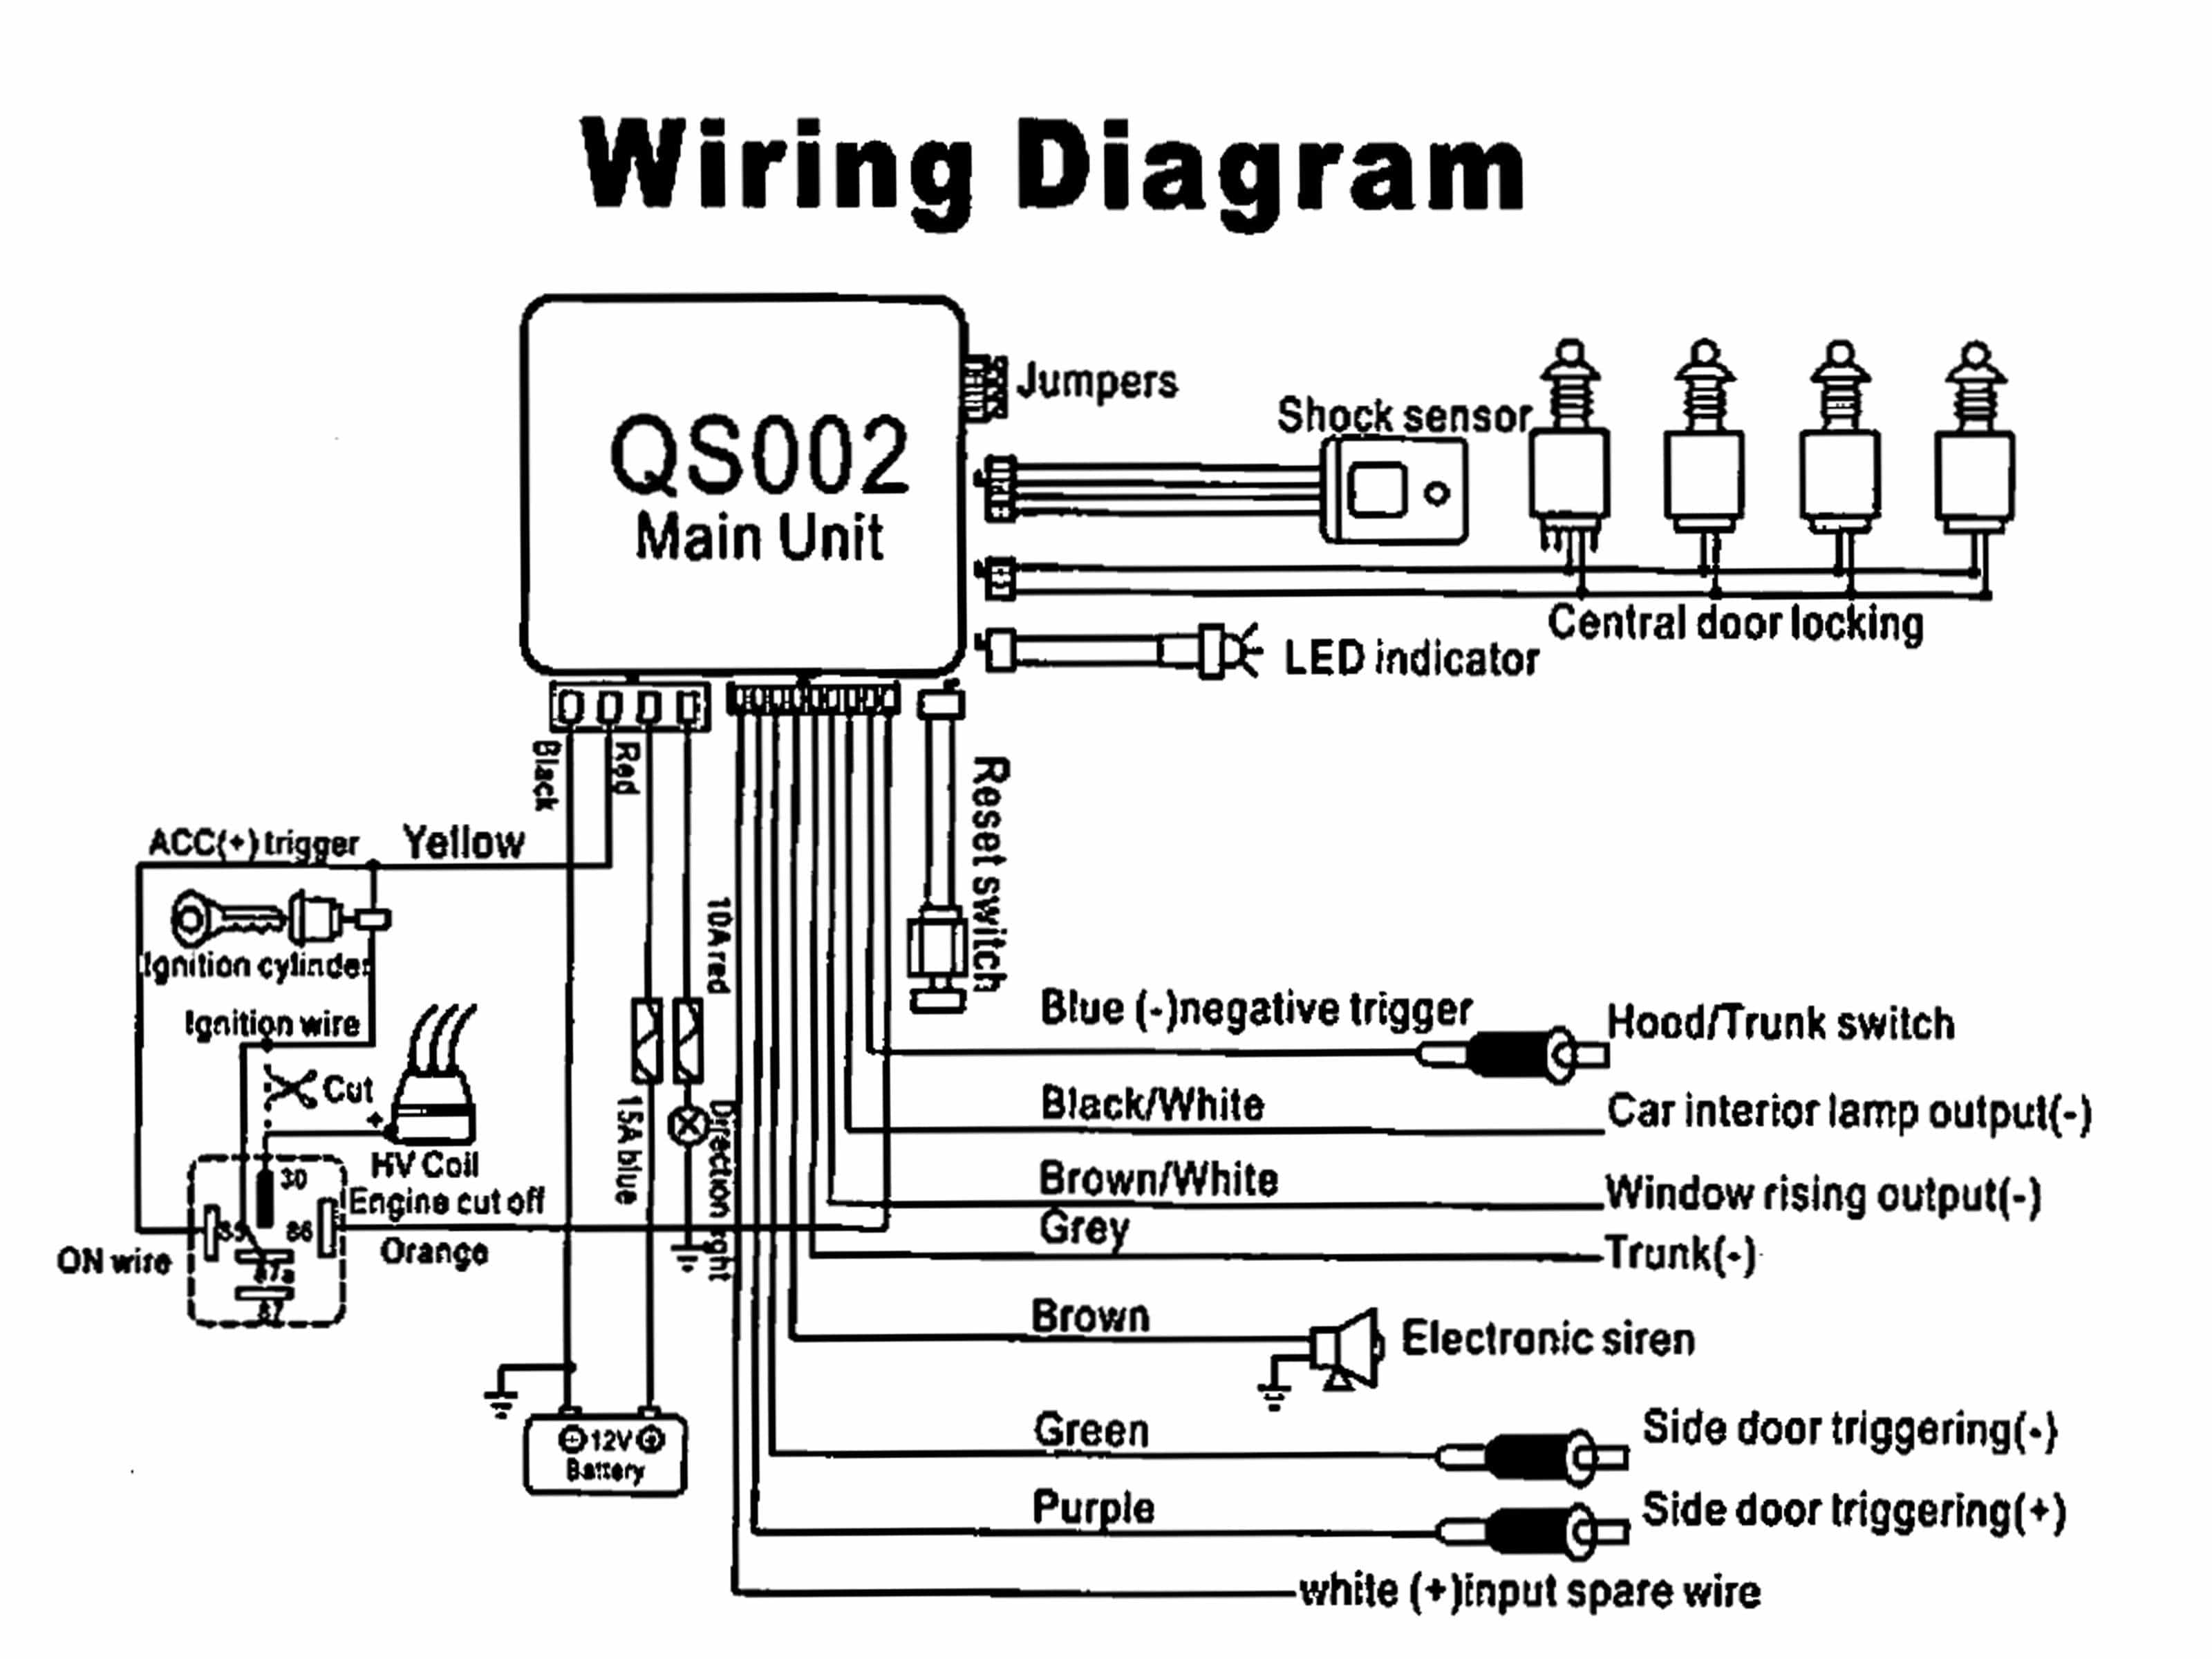 AlarmInstructions_7a98a2bc d189 4c5b 99b3 c774abdbef28 clarion cmd5 wiring diagram wiring diagram shrutiradio  at alyssarenee.co